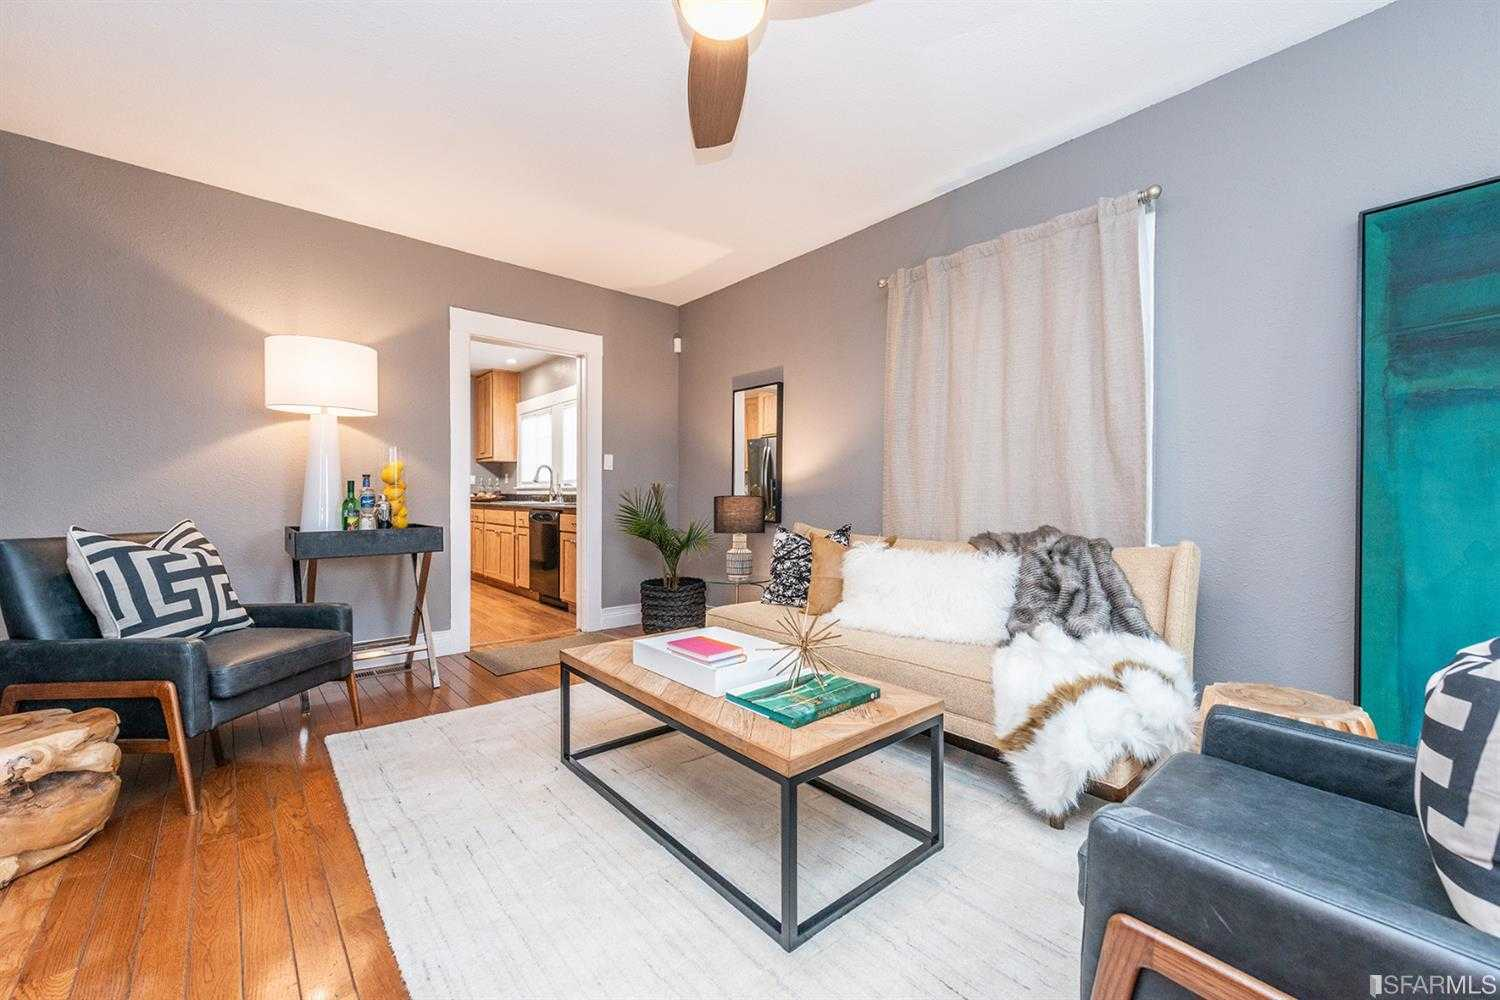 $495,000 - 3Br/1Ba -  for Sale in Oakland